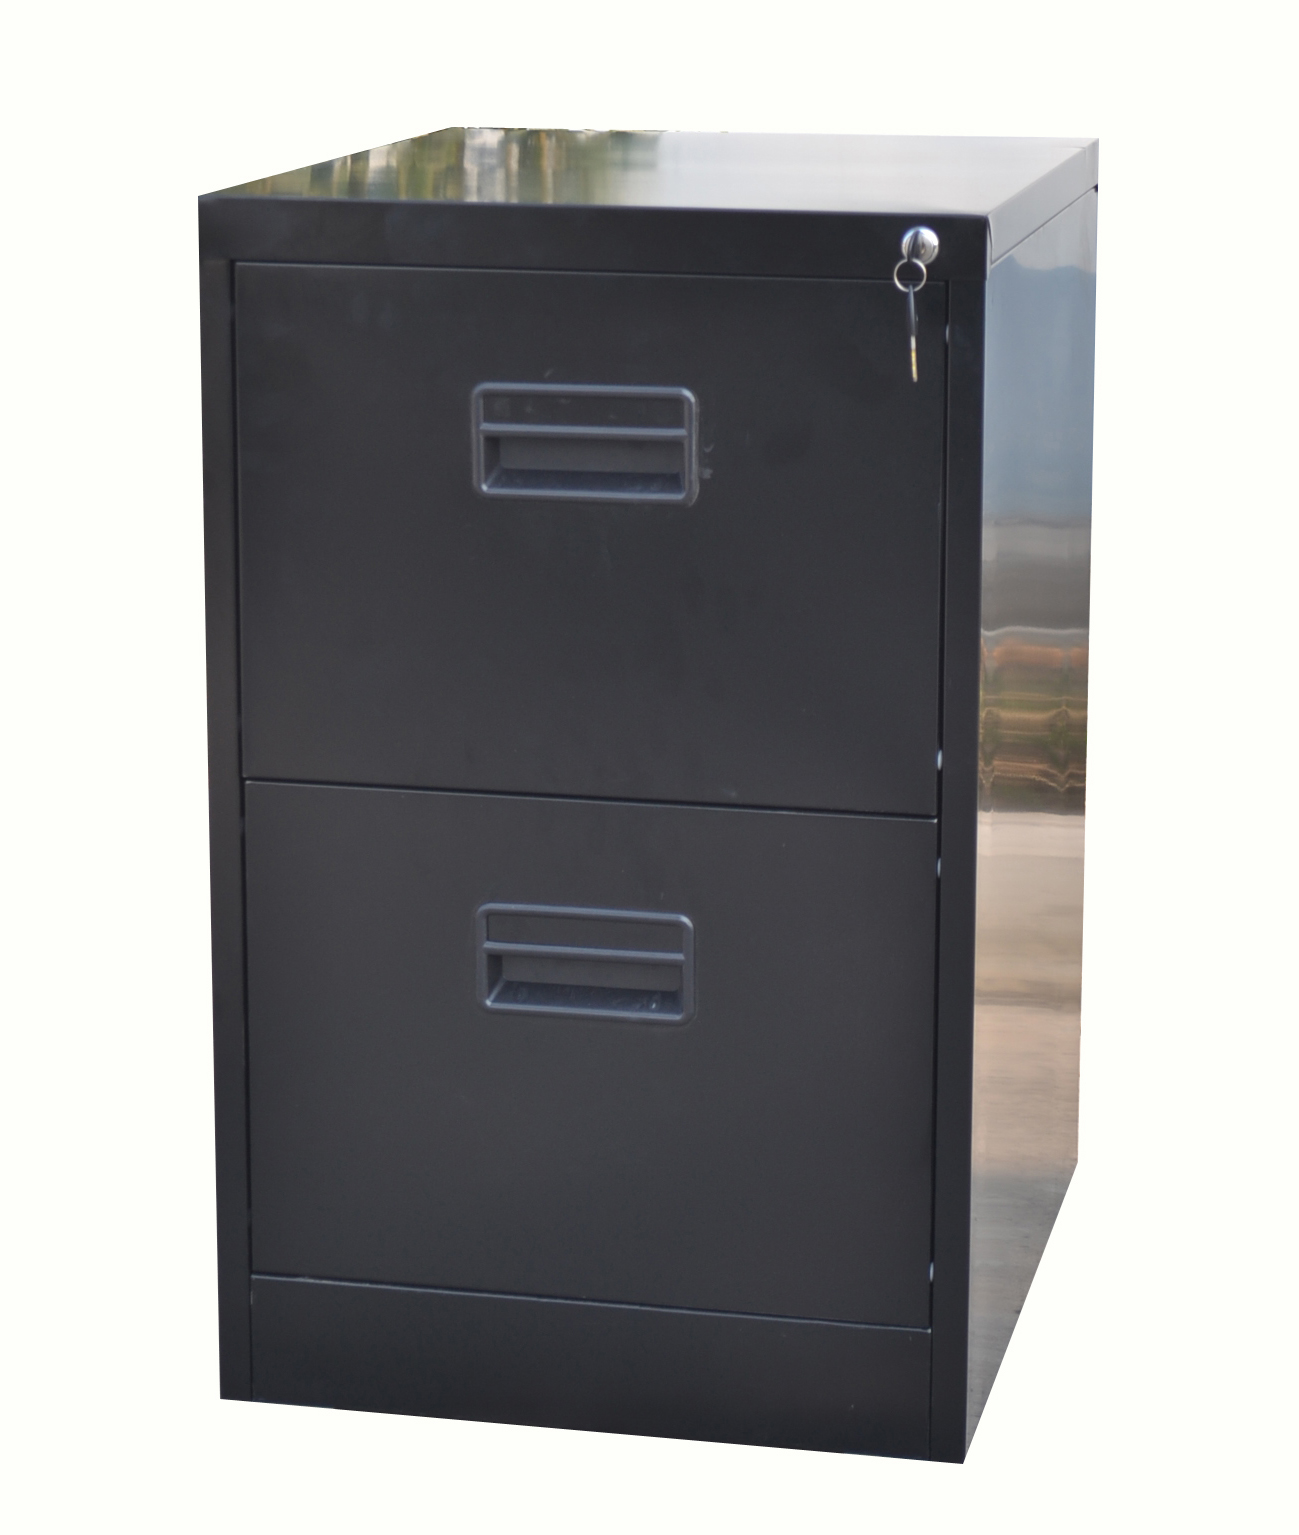 Home Office Filing Cabinet A4 File Storage Metal Steel Lockable Black 2 Drawer